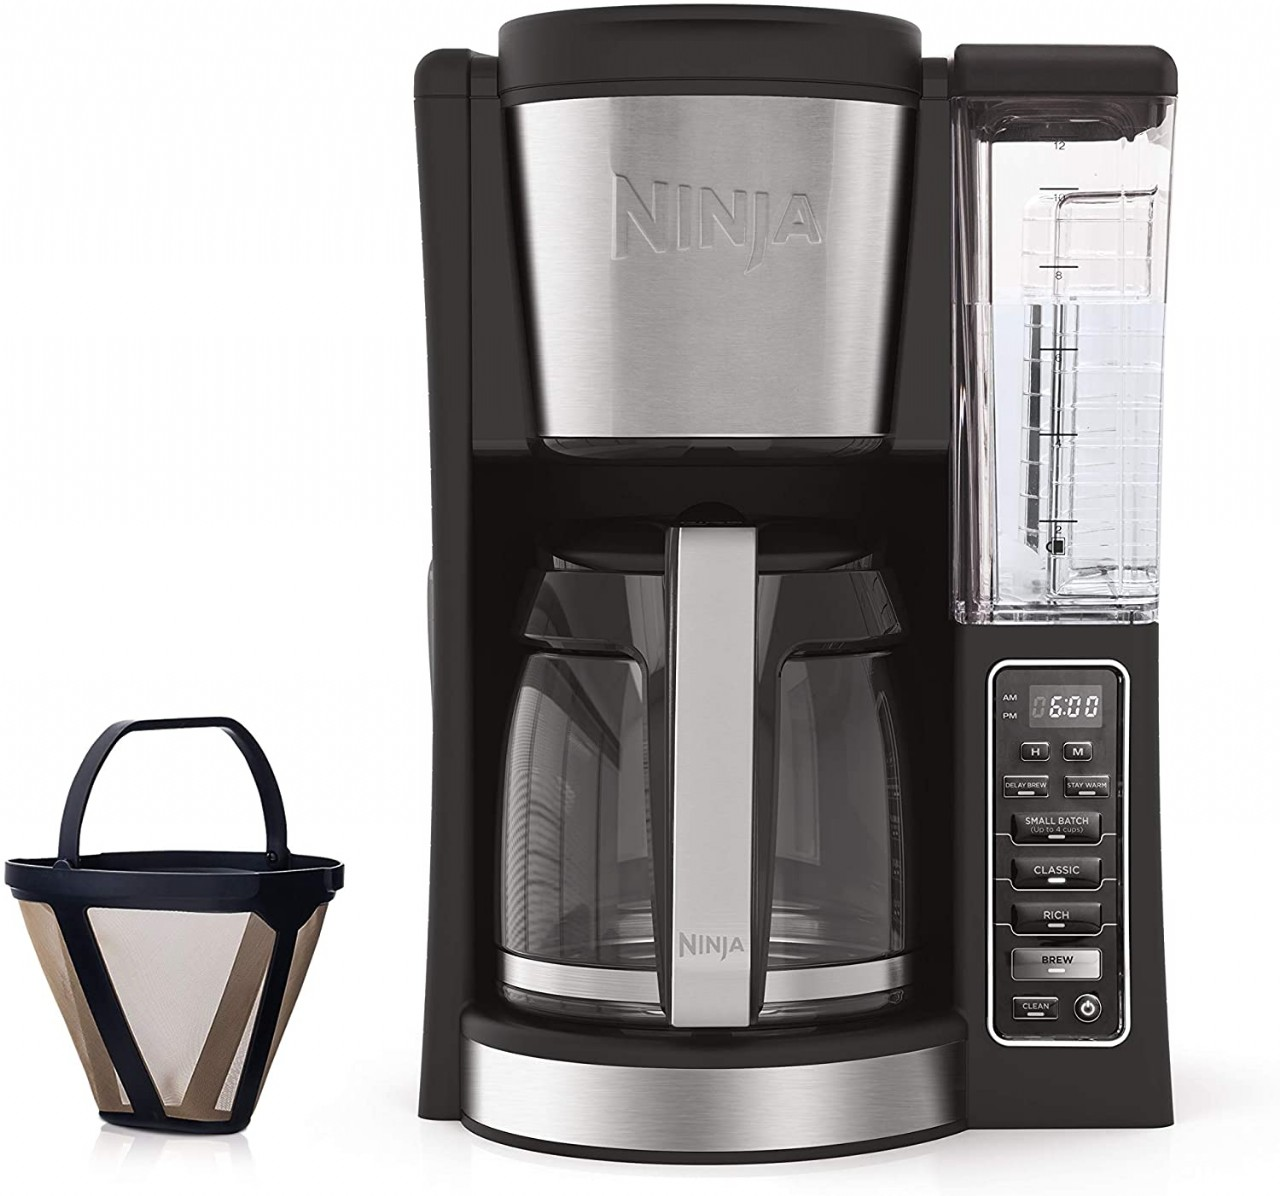 Ninja 12-Cup Programmable Coffee Maker with Classic and Rich Brews, 60 oz. Water Reservoir